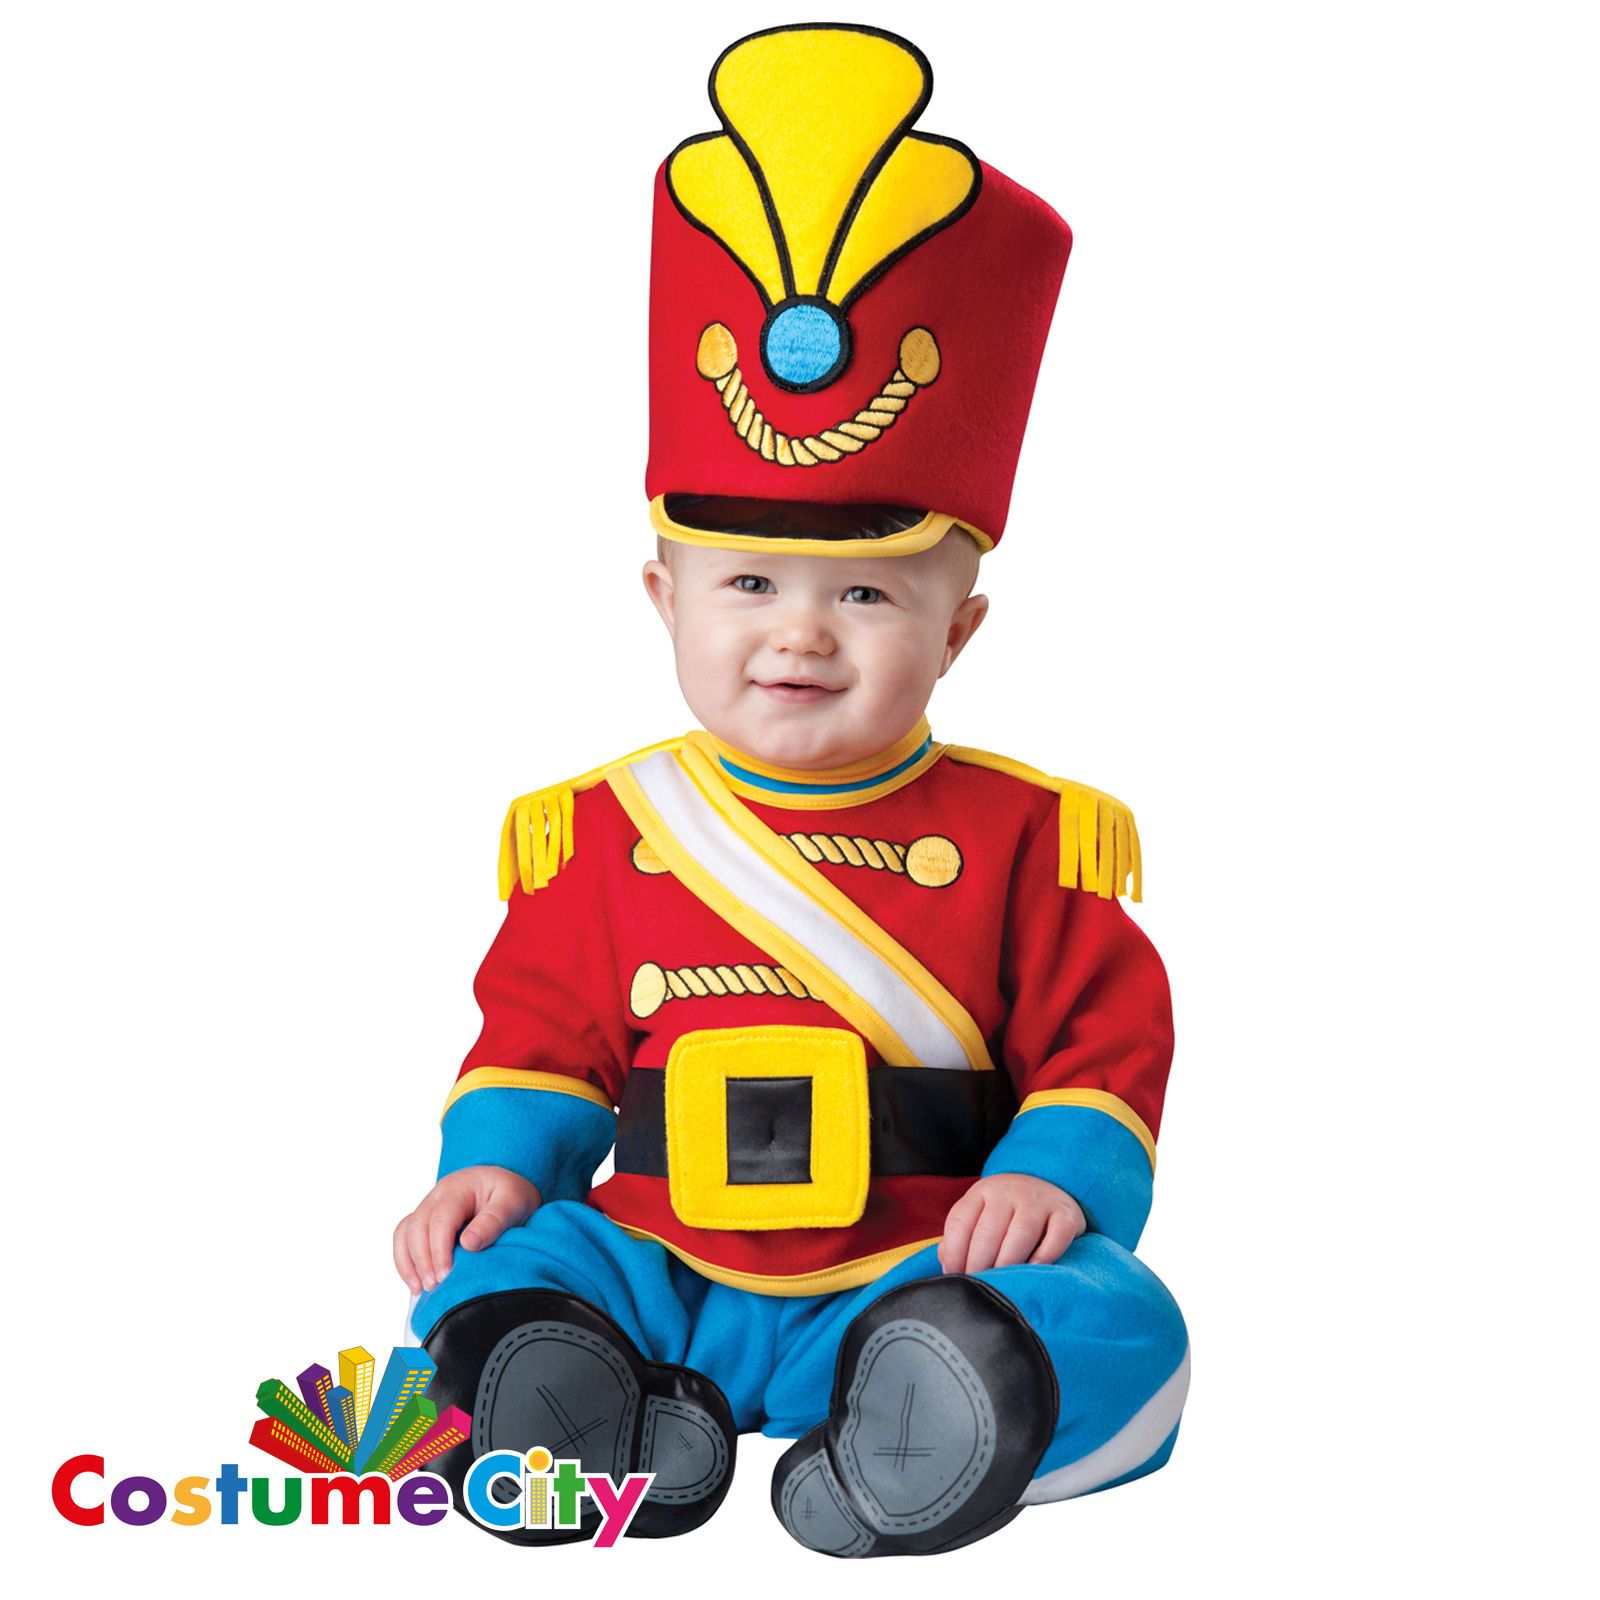 Luxury Babyu0027s Tiny Toy Soldier Nutcracker Fancy Dress Party Christmas Costume | Baby u0026 Toddlersu0027 Fancy Dress | Fancy Dress  sc 1 st  Pinterest : infant christmas costumes  - Germanpascual.Com